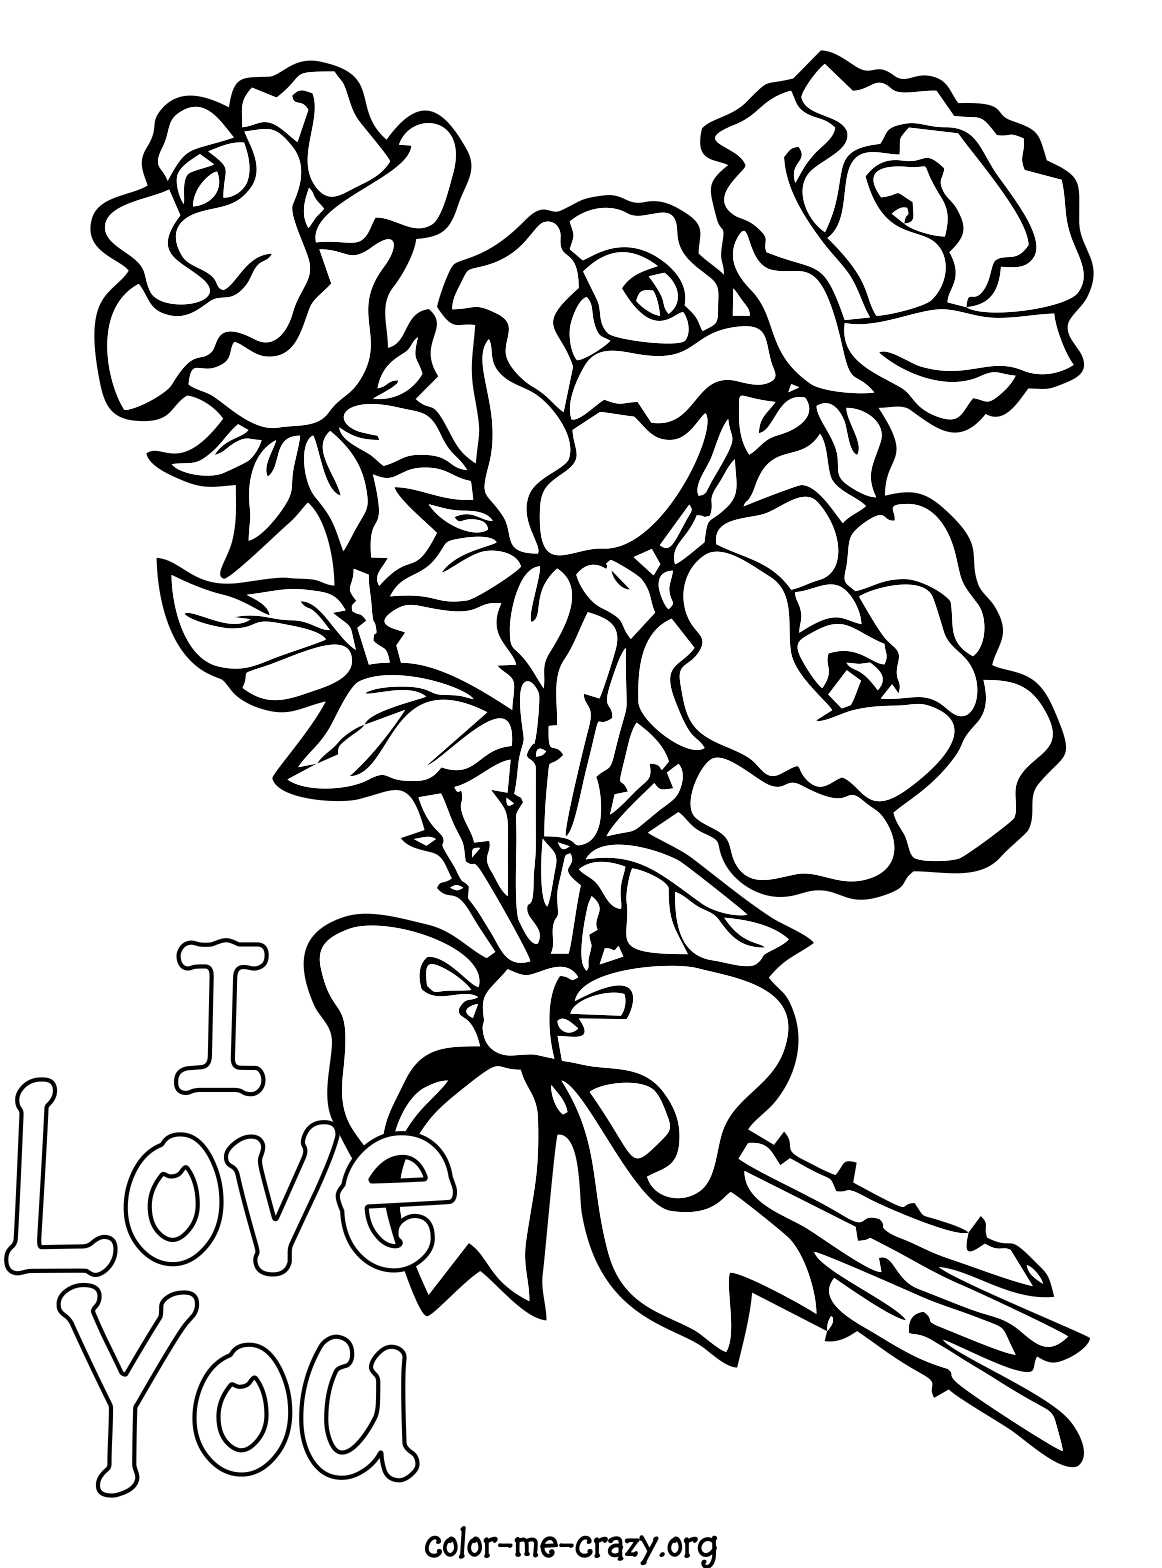 valentine coloring stationary pages | ColorMeCrazy.org: Valentine Coloring Pages